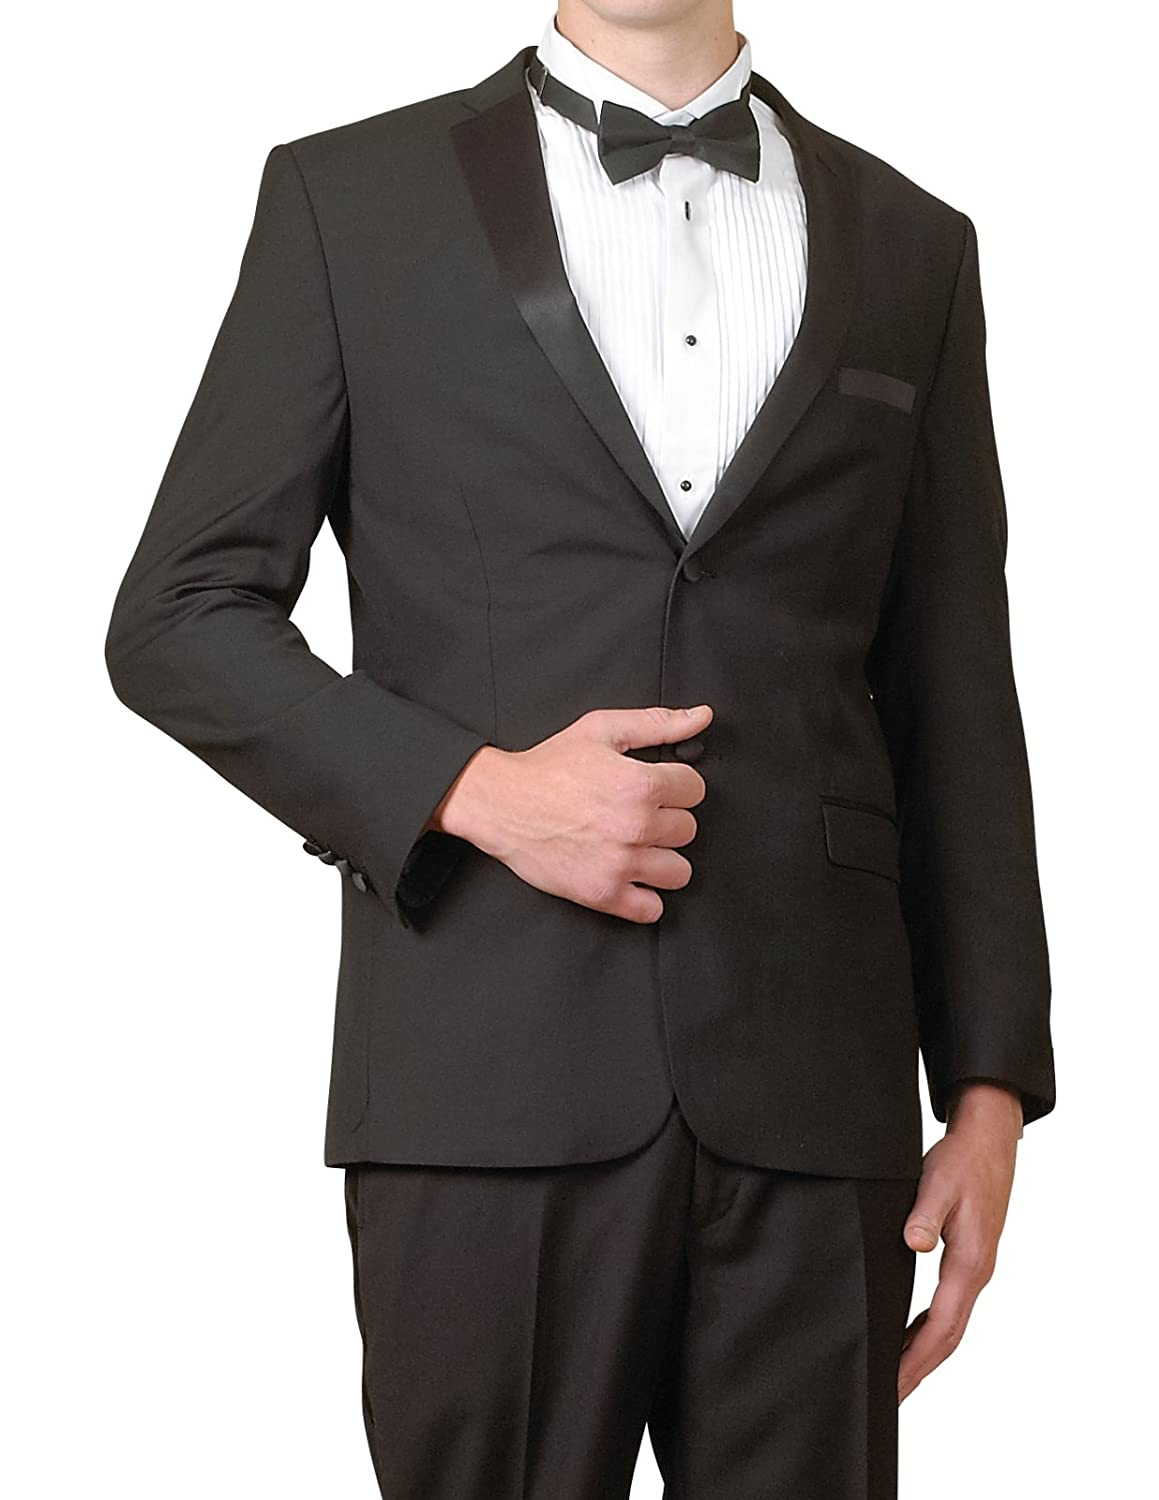 New Era Factory Outlet New Men's Super 140s Modern Black 2 Button Slim Fit Tuxedo Suit